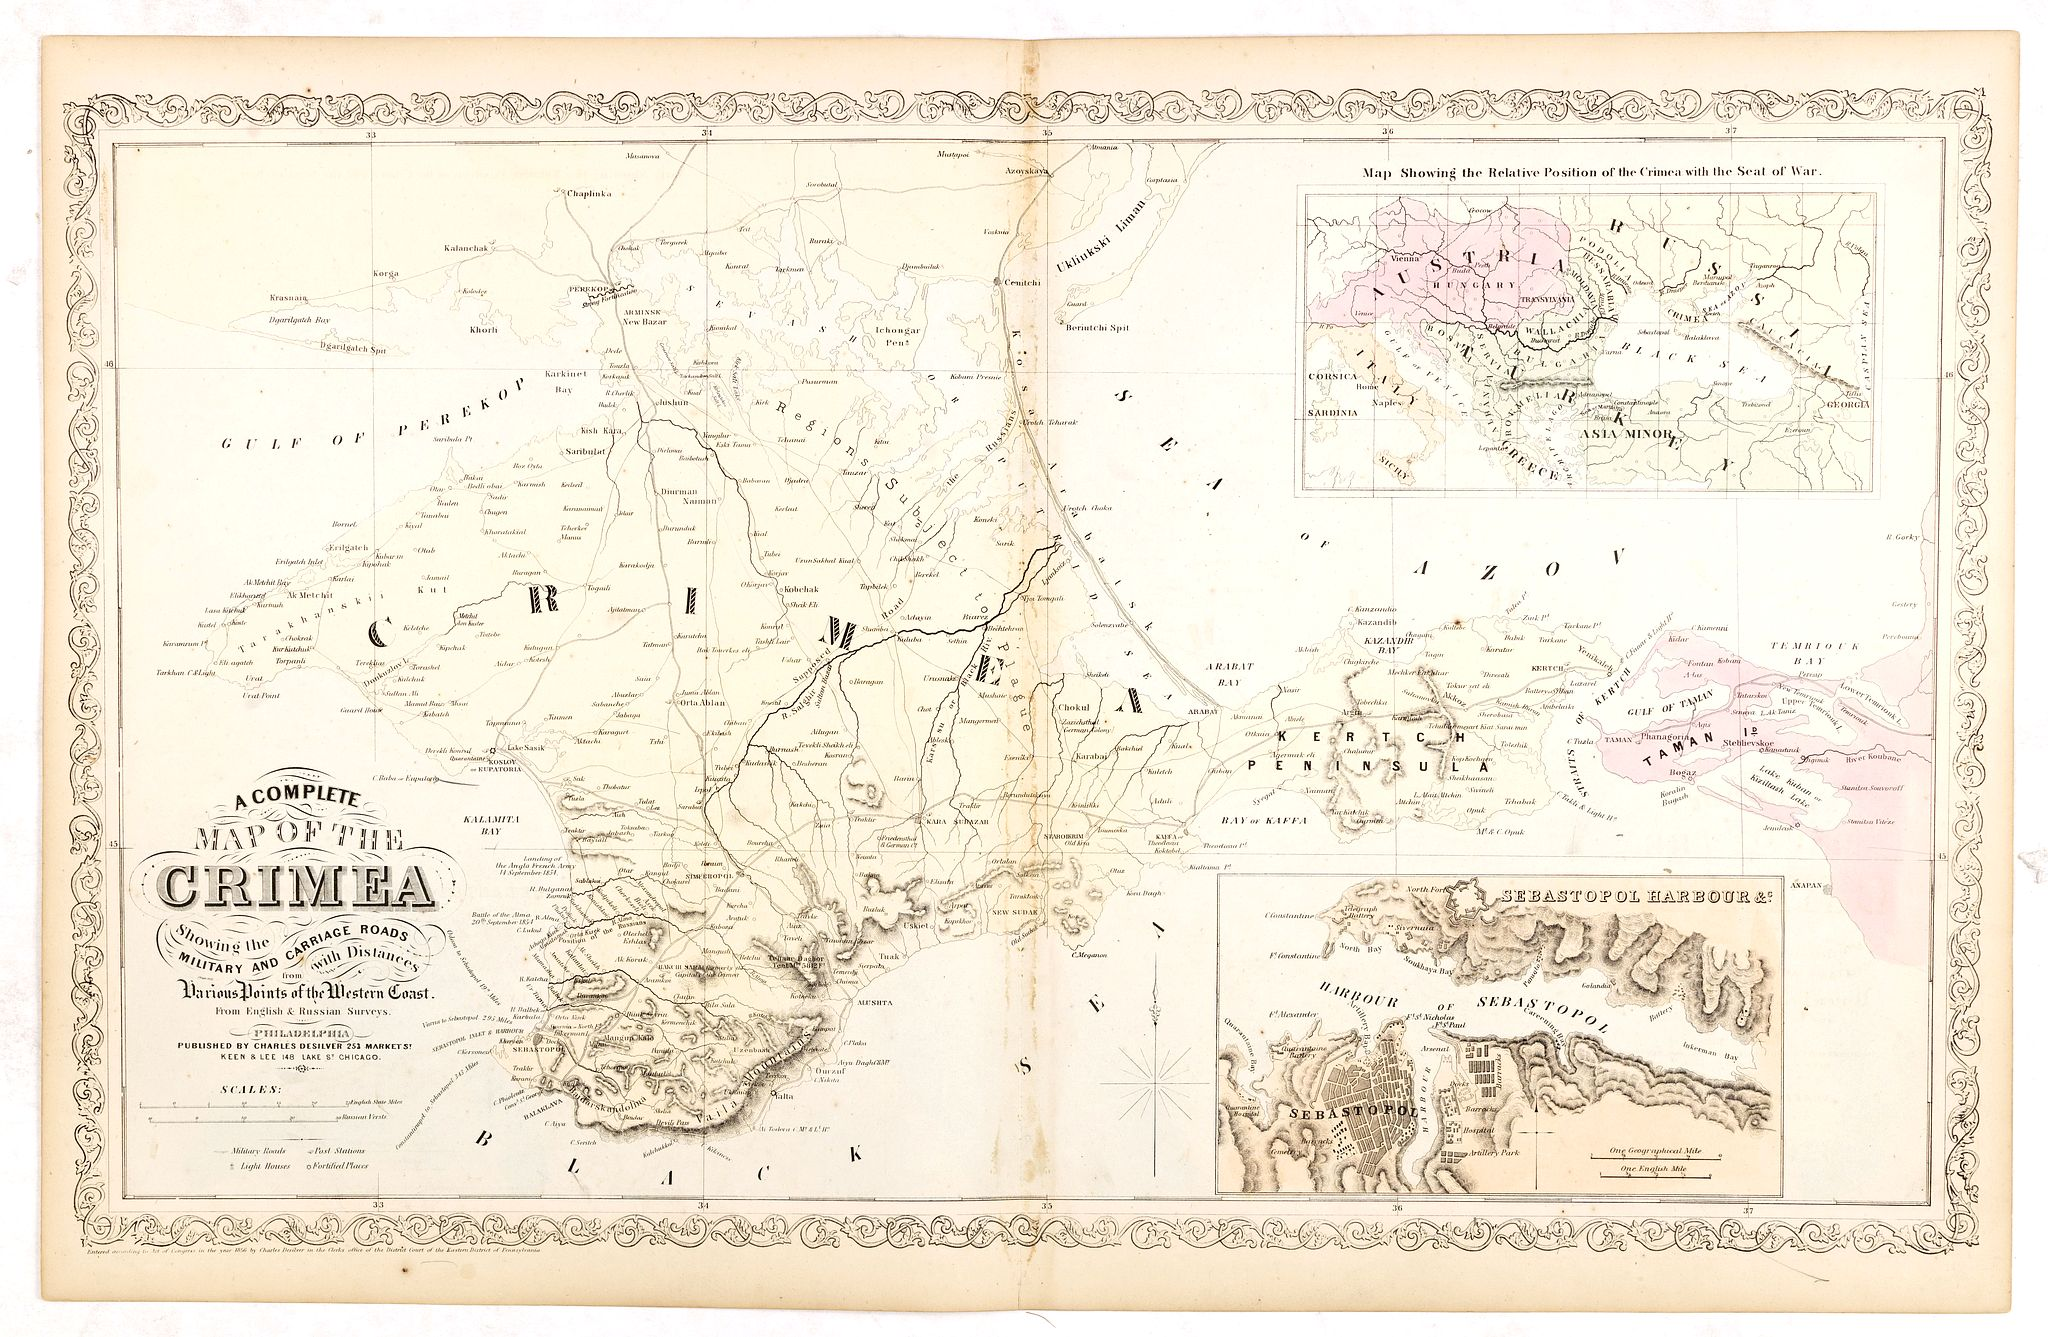 DE SILVER, C. / MITCHEL, S.A.,  A Complete Map of the Crimea Showing the Military and Carriage Roads with Distances from Various Points of the Western Coast From English & Russian Surveys. . ., antique map, old maps